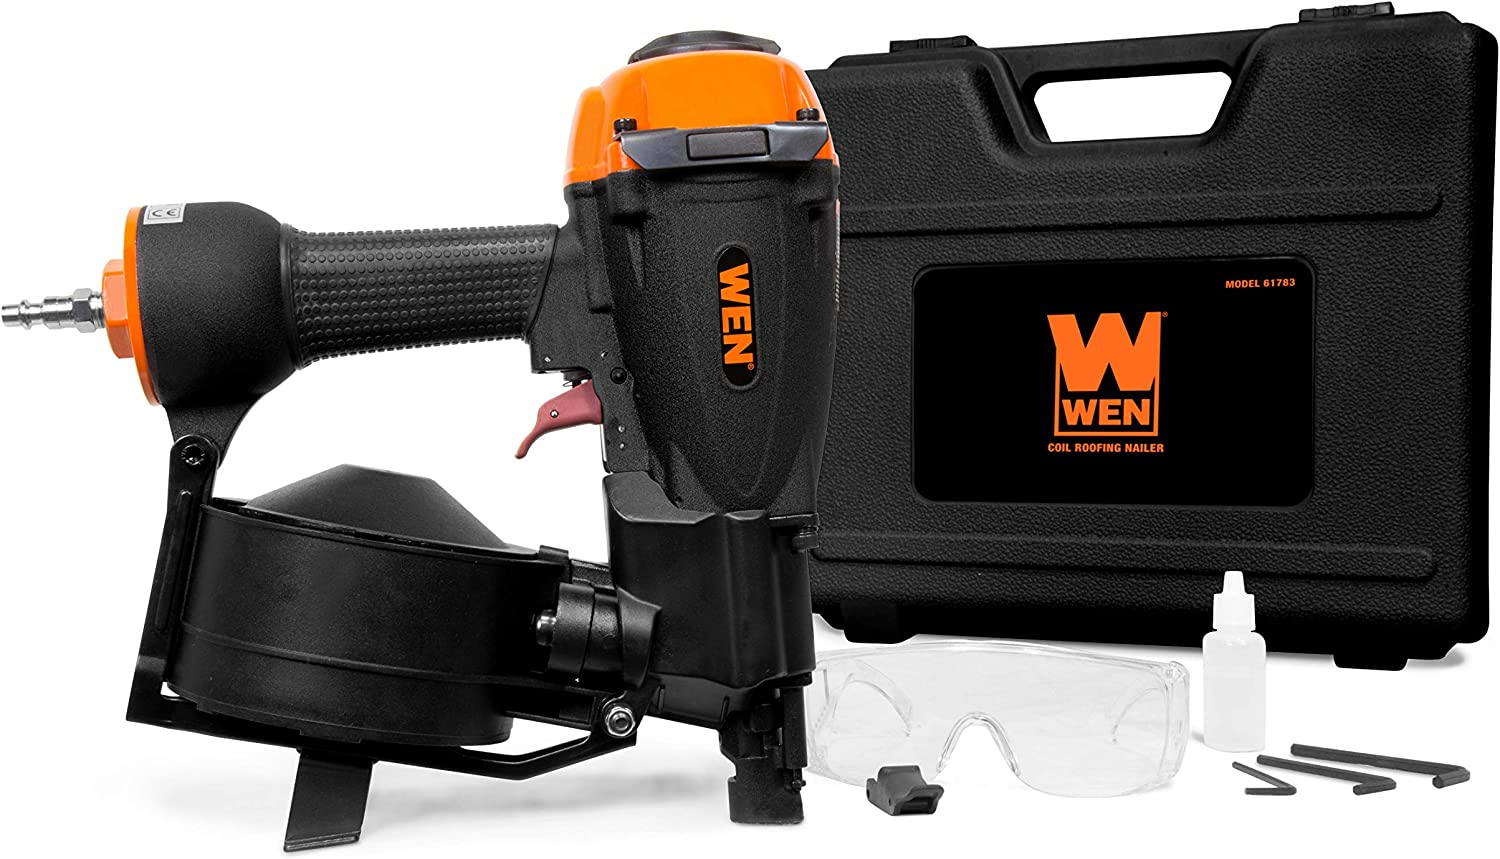 WEN 61783 3 4-Inch to 1-3 4-Inch Pneumatic Coil Roofing Nailer